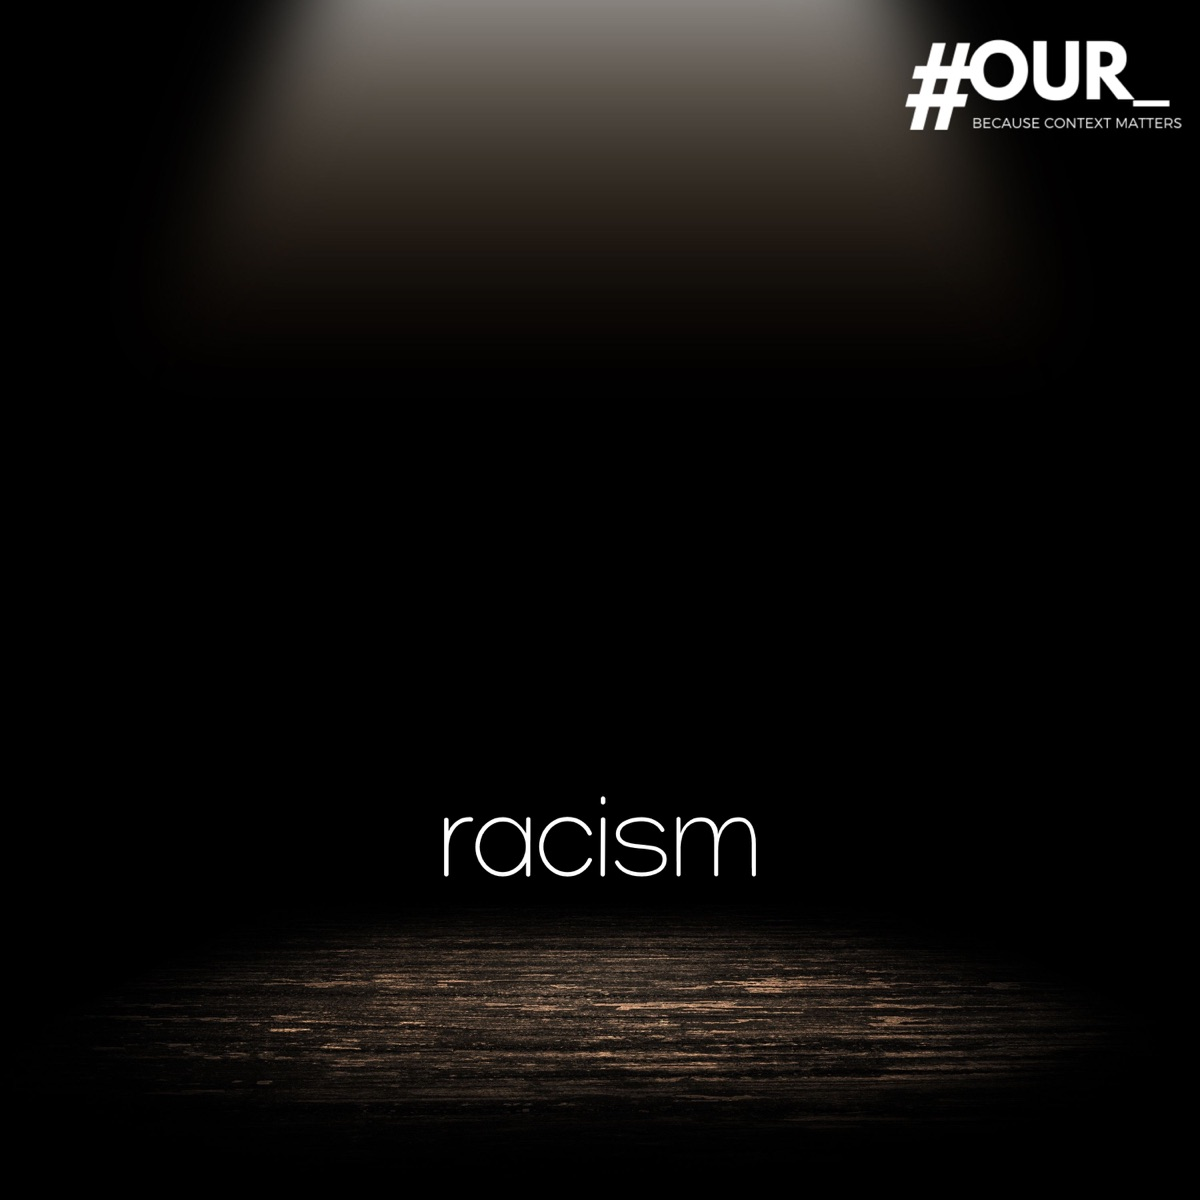 #OUR_racism